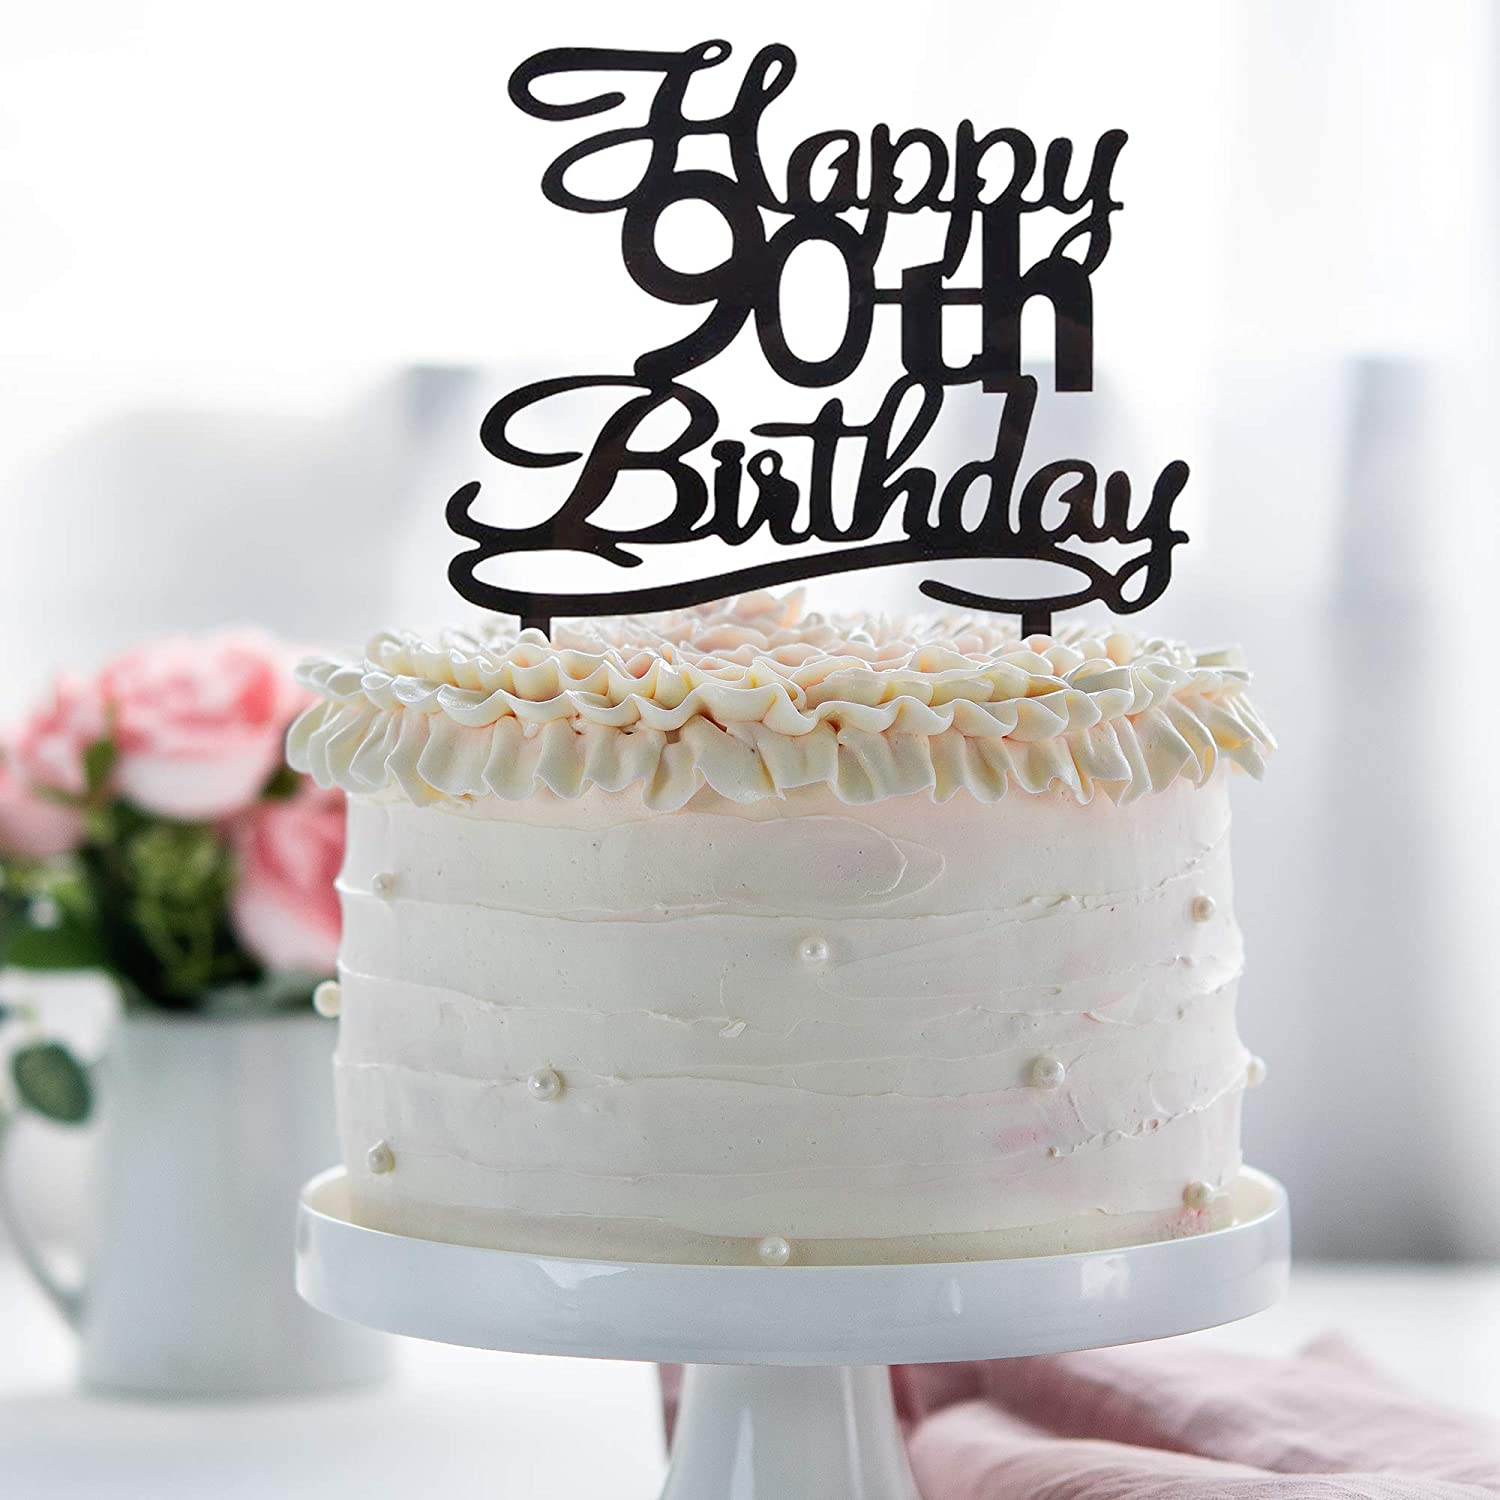 Waway Happy 90TH Birthday Acrylic Cake Topper For 90 Years Old Party Decoration Supplies Black Amazonau Home